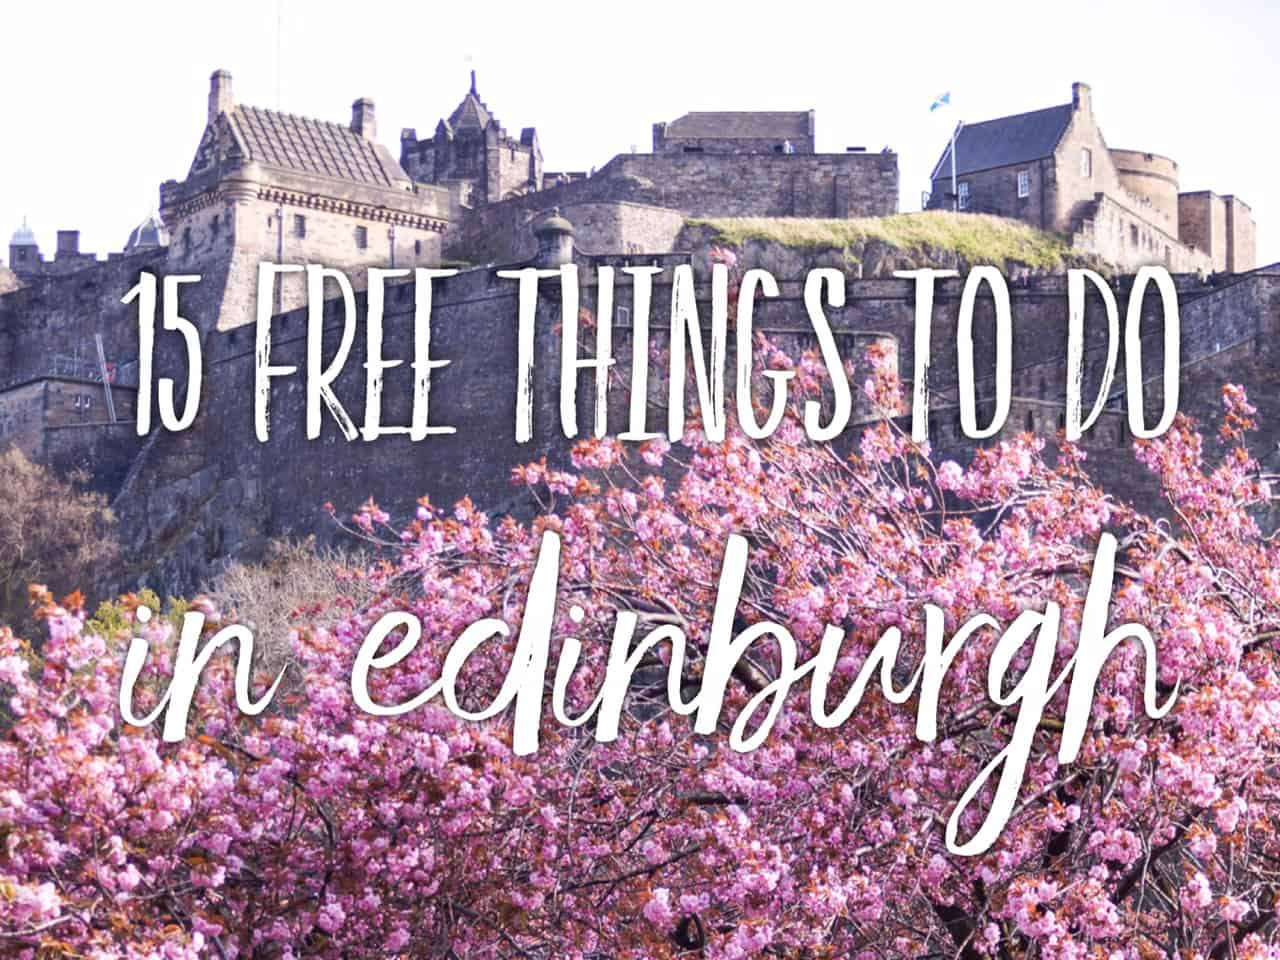 15 absolutely free things to do in Edinburgh, Scotland